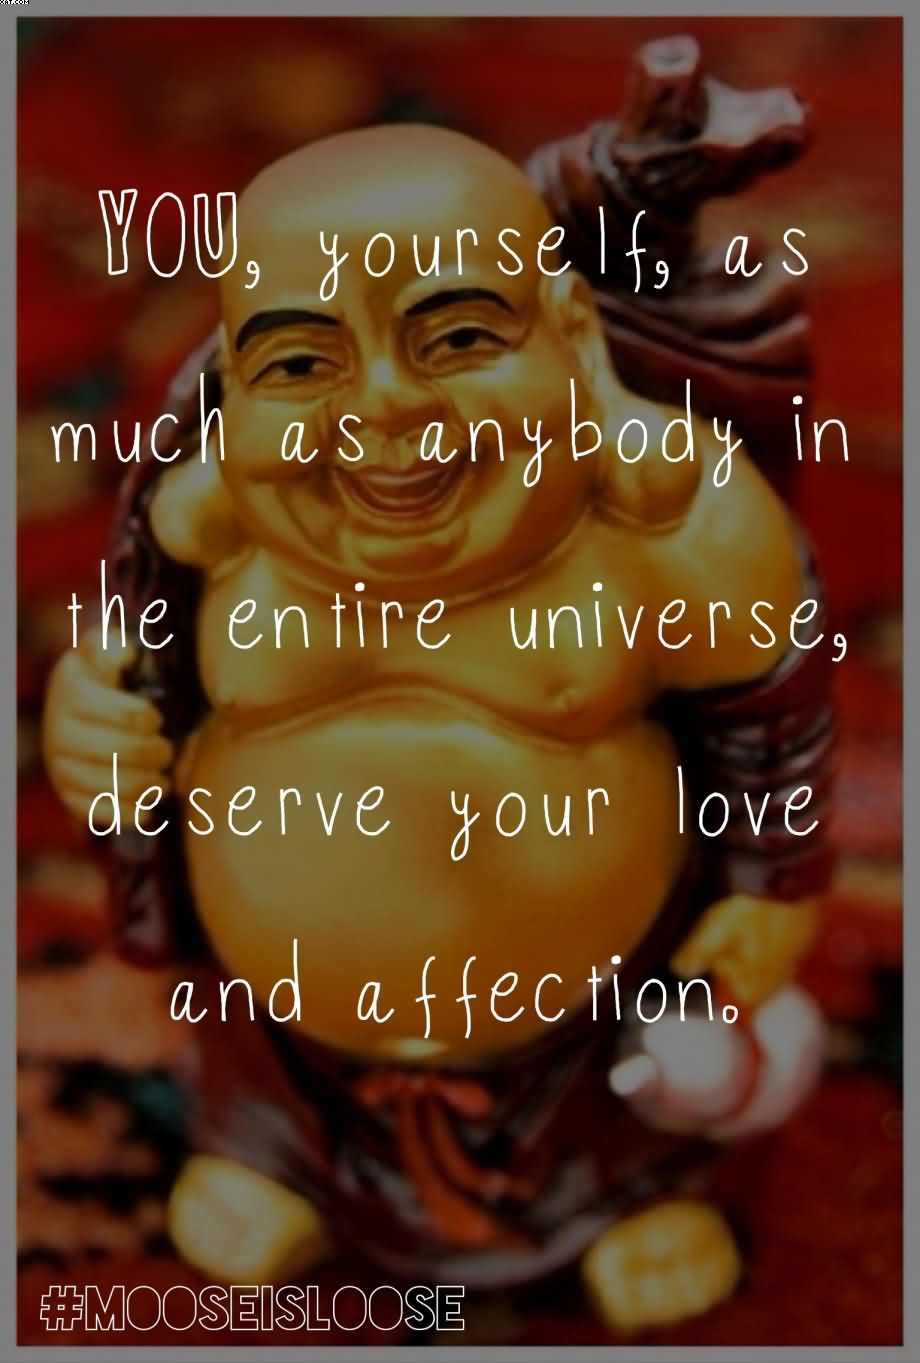 You, Yourself As Much As Anybody In The Entire Universe Deserve Your Love And Affection.